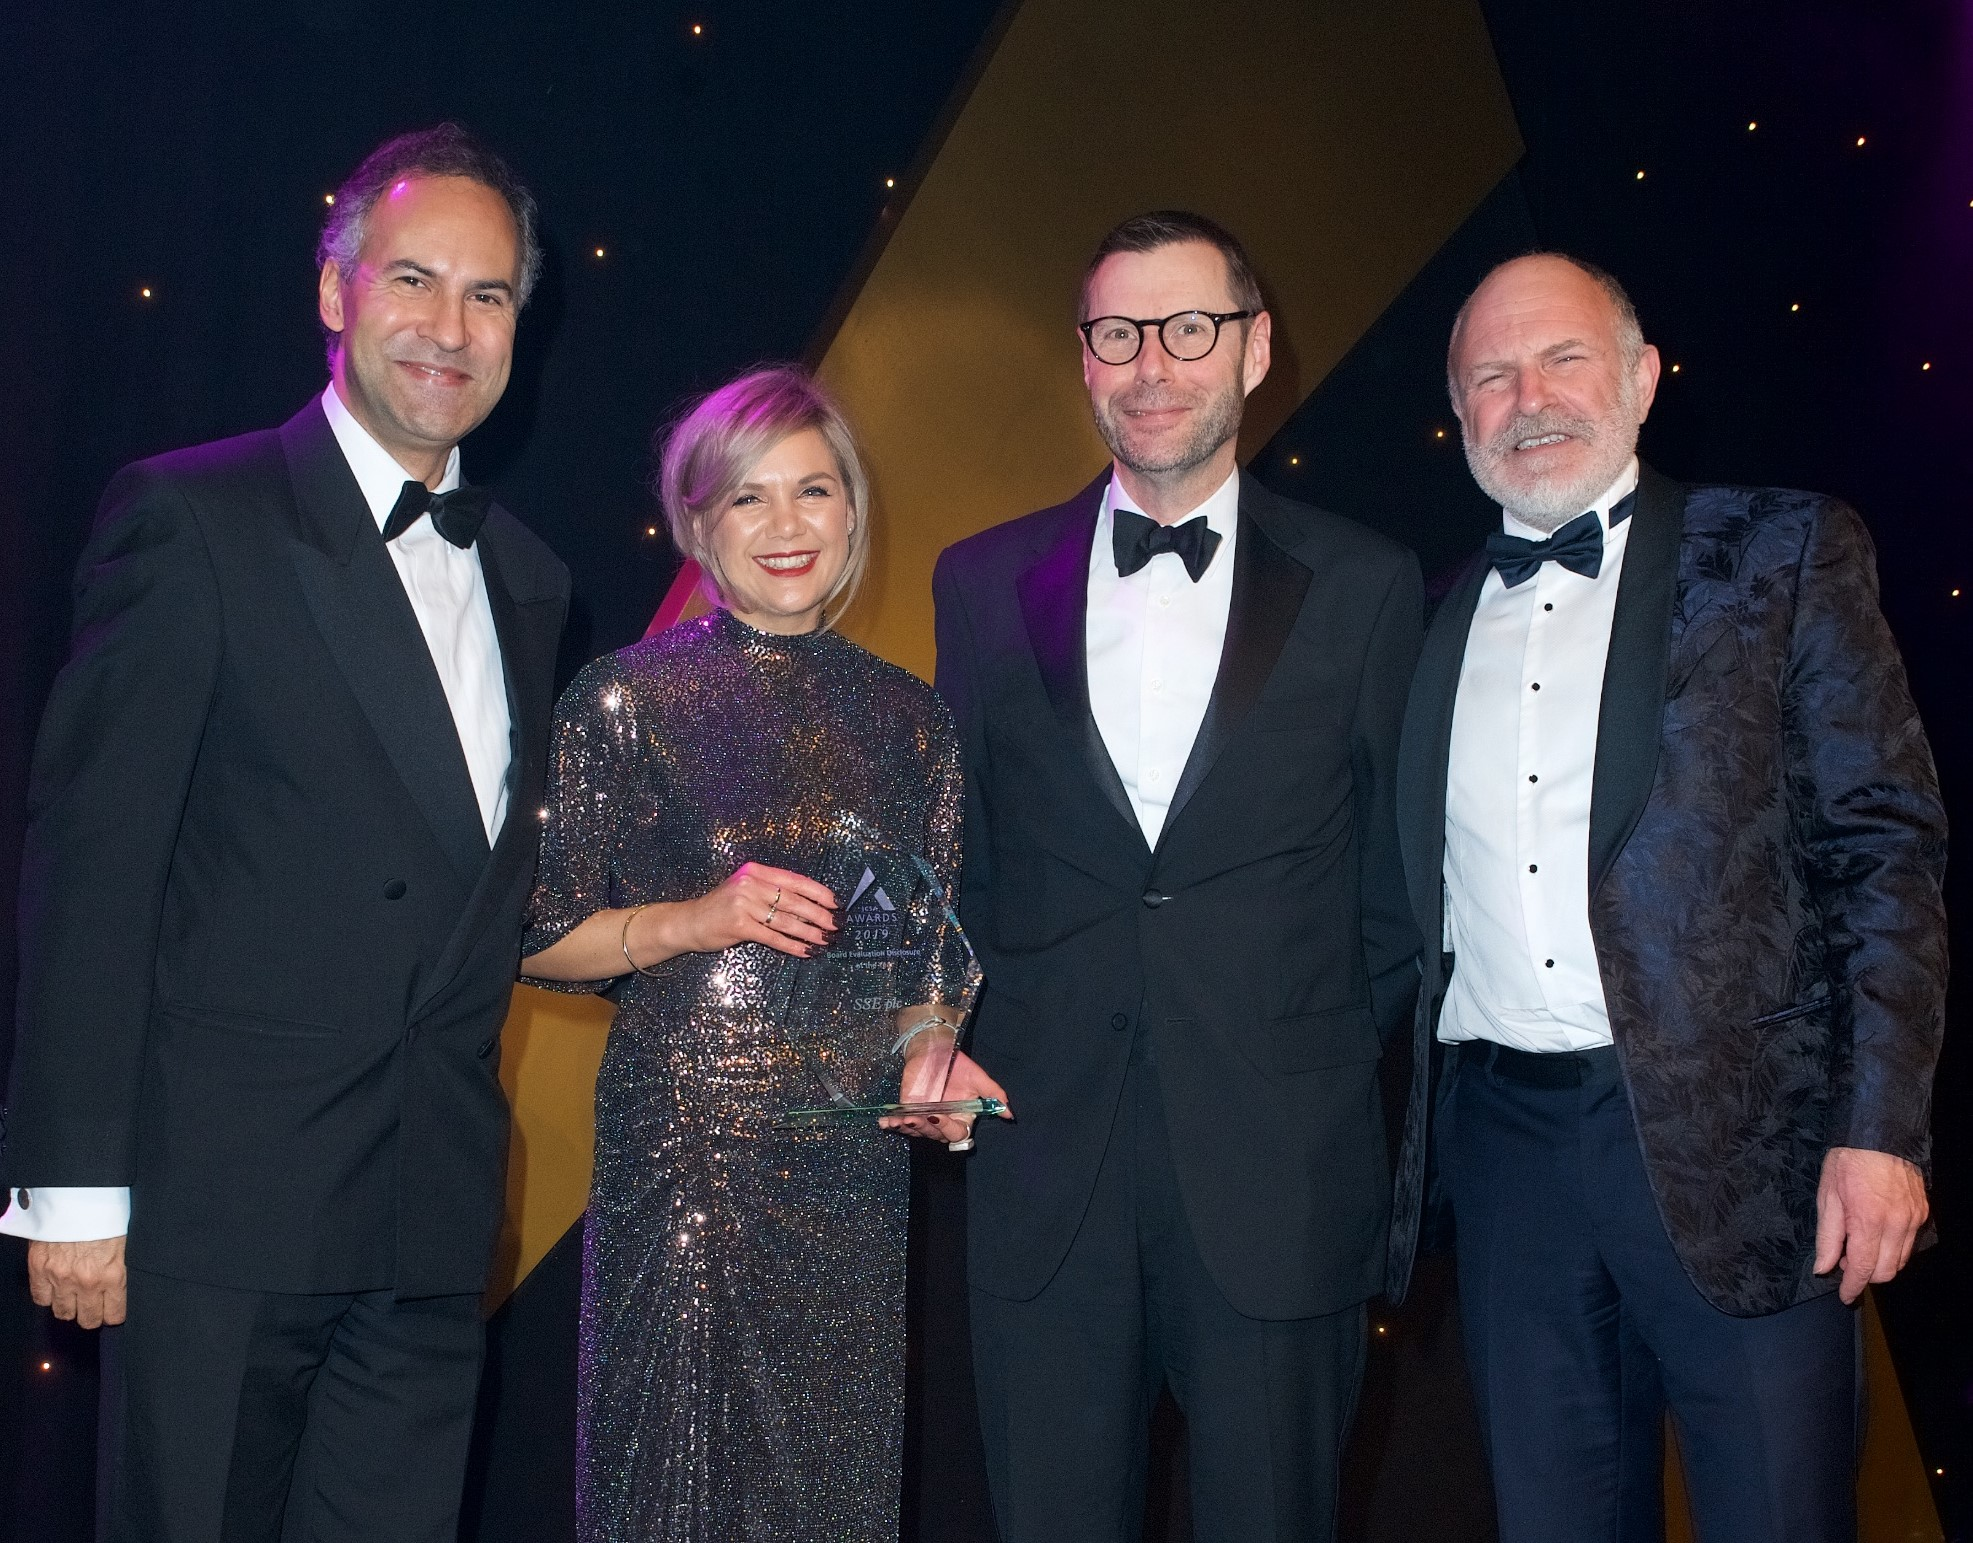 ICSA Awards - Board Evaluation Disclosure of the Year